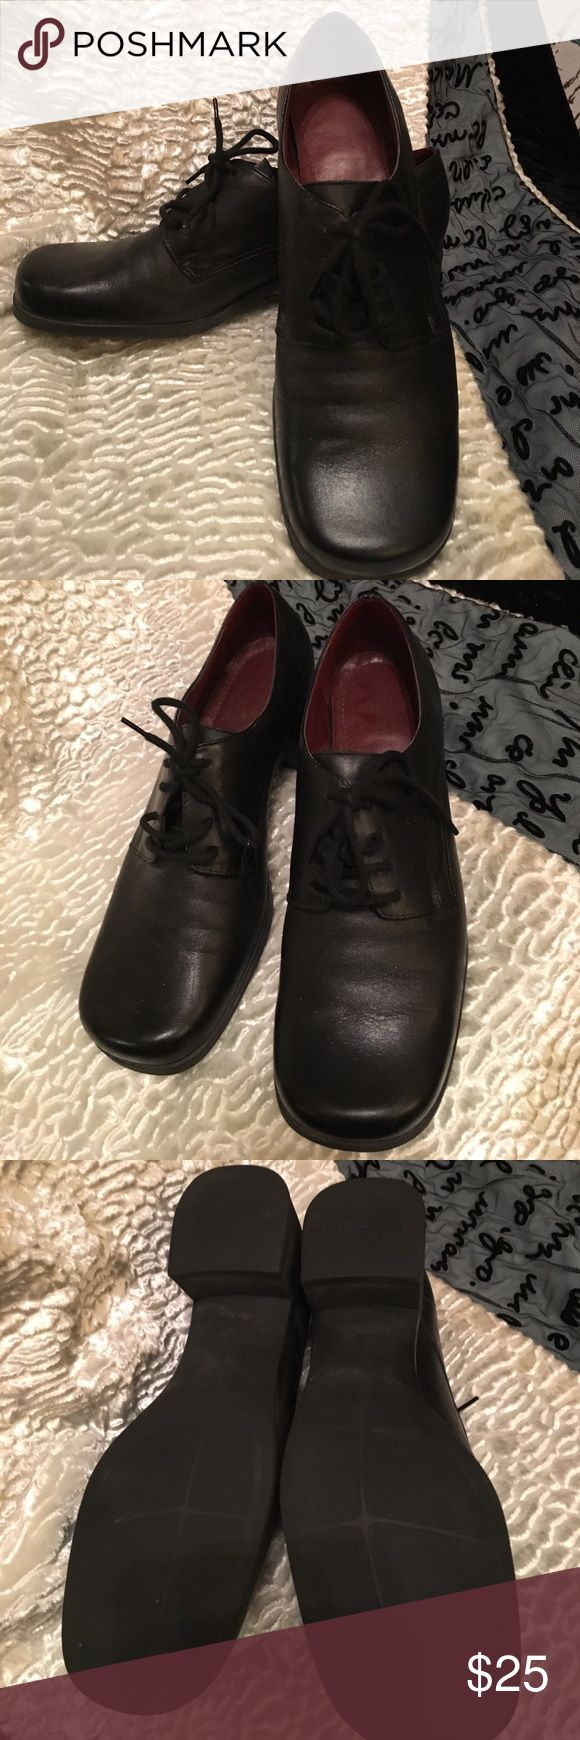 Naturalizer lace up ladies shoes black. Sz 6.5 These woman's Naturalizer shoes are in excellent condition. They are size 6.5. They lace up and have a 3 cm heel. Naturalizer Shoes Heels